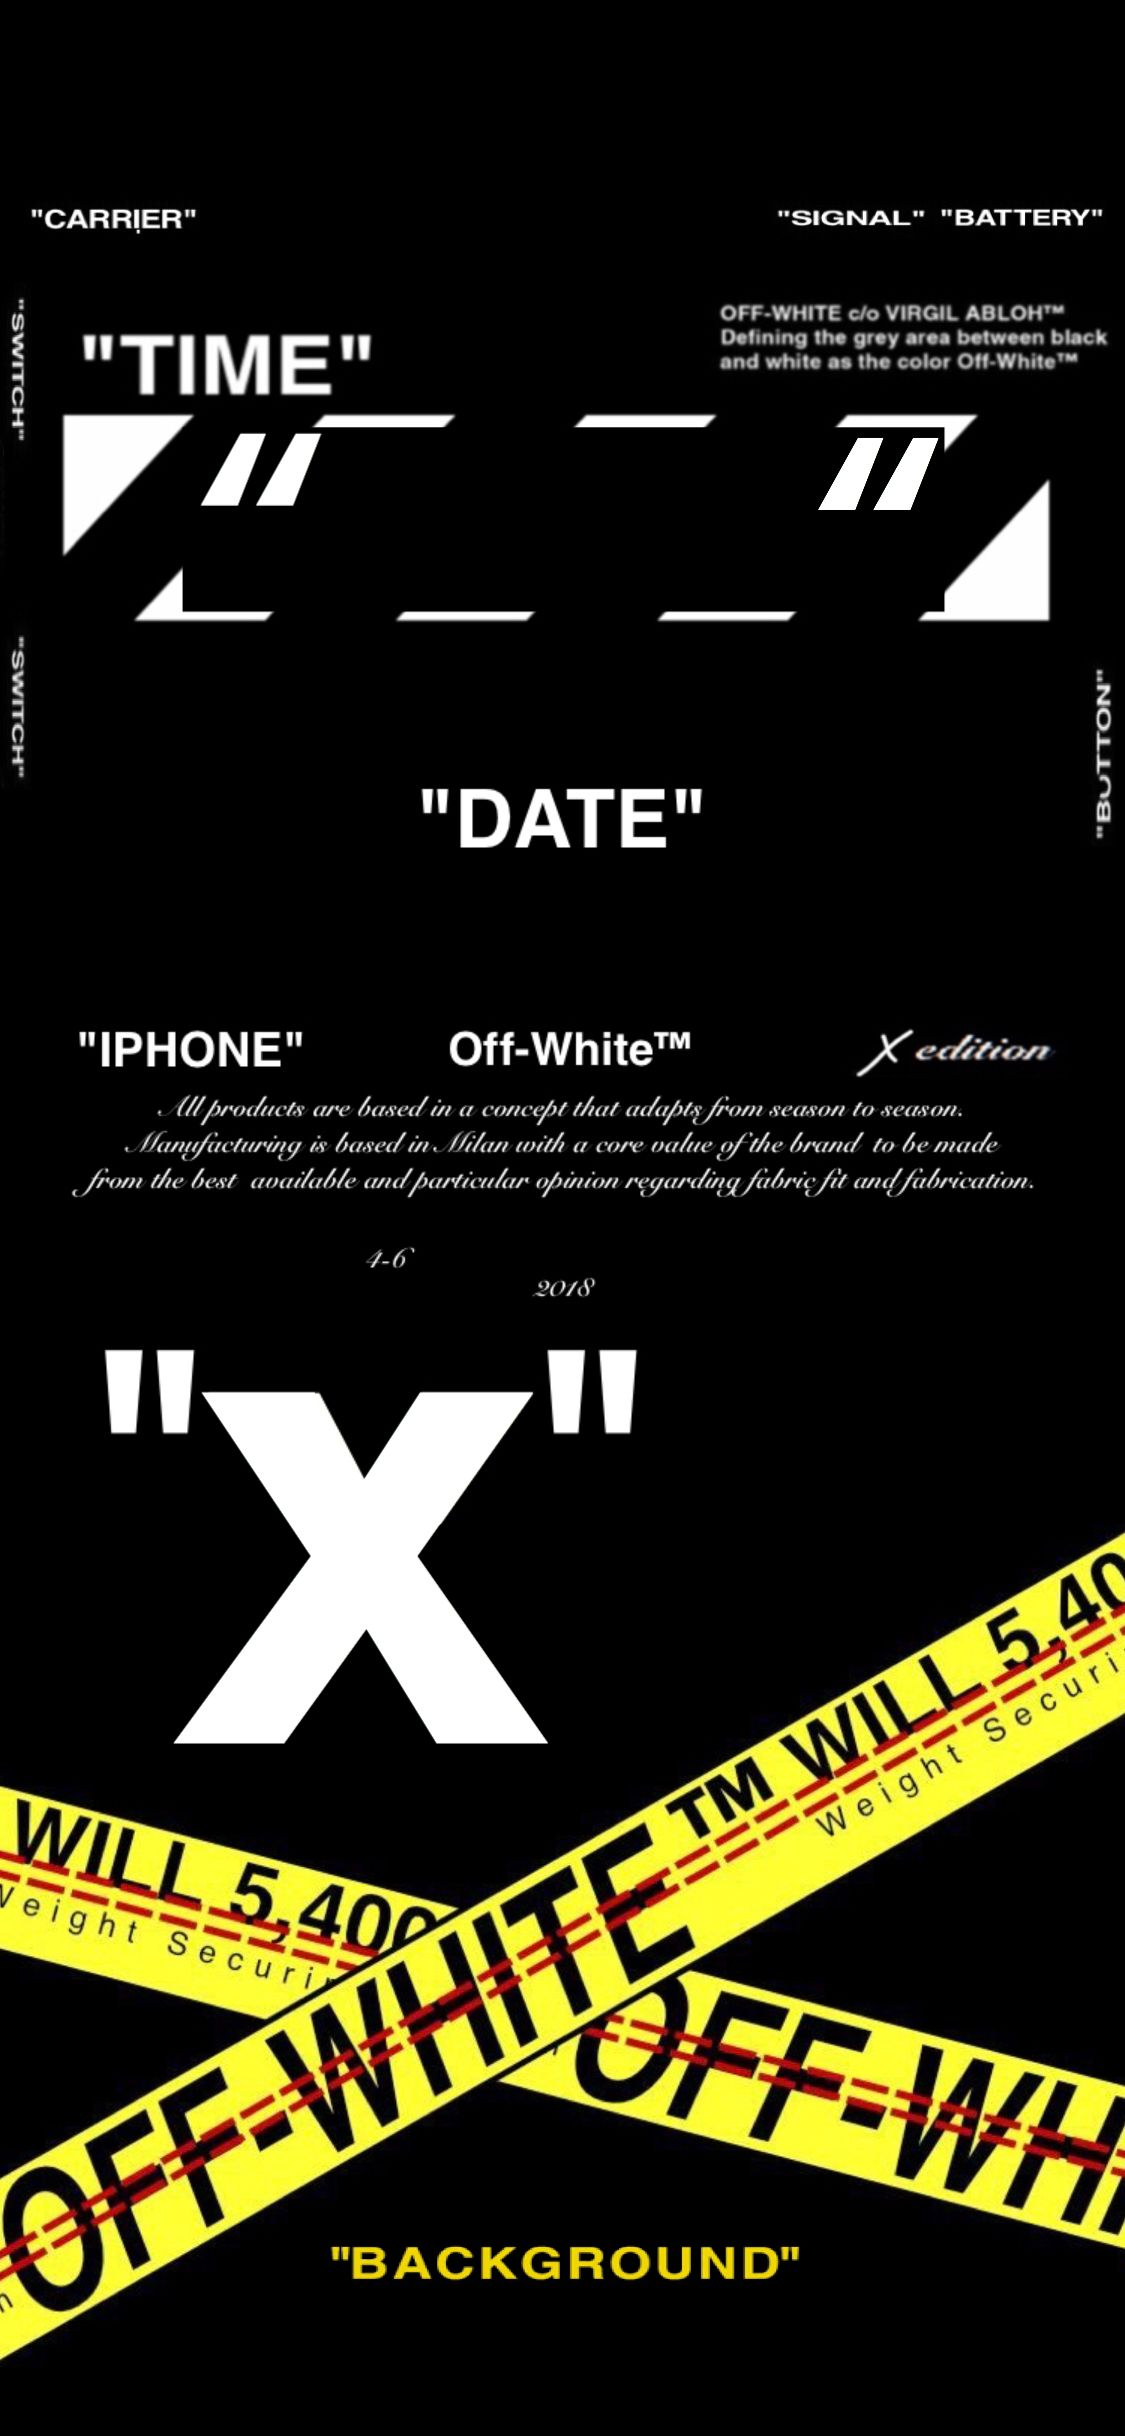 Wallpaper Off White C White Wallpaper For Iphone Wallpaper Off White Iphone Wallpaper Off White